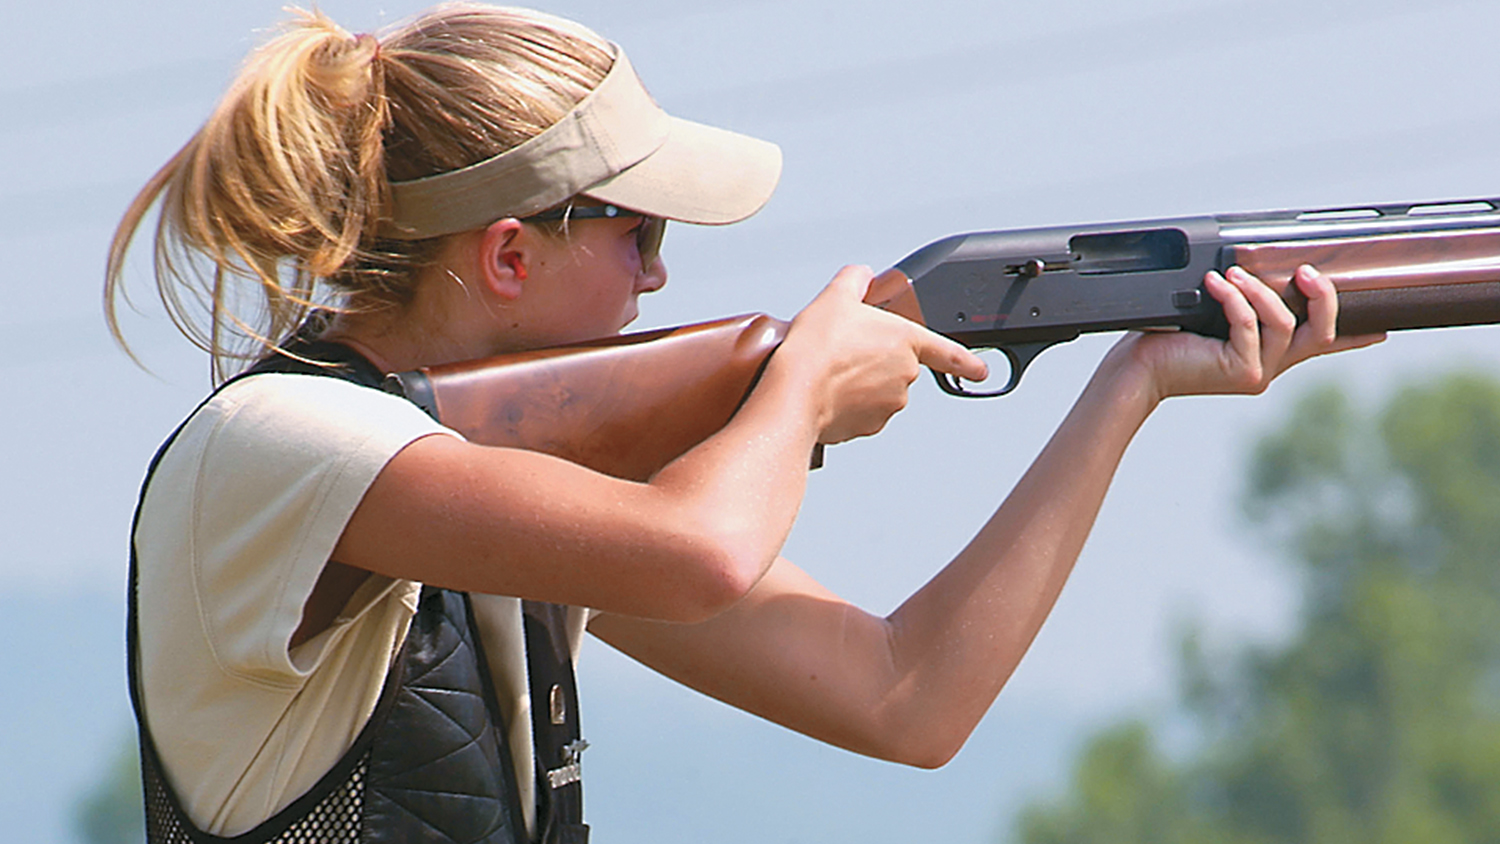 7 Tips for New Women Shooters From Women Shooters